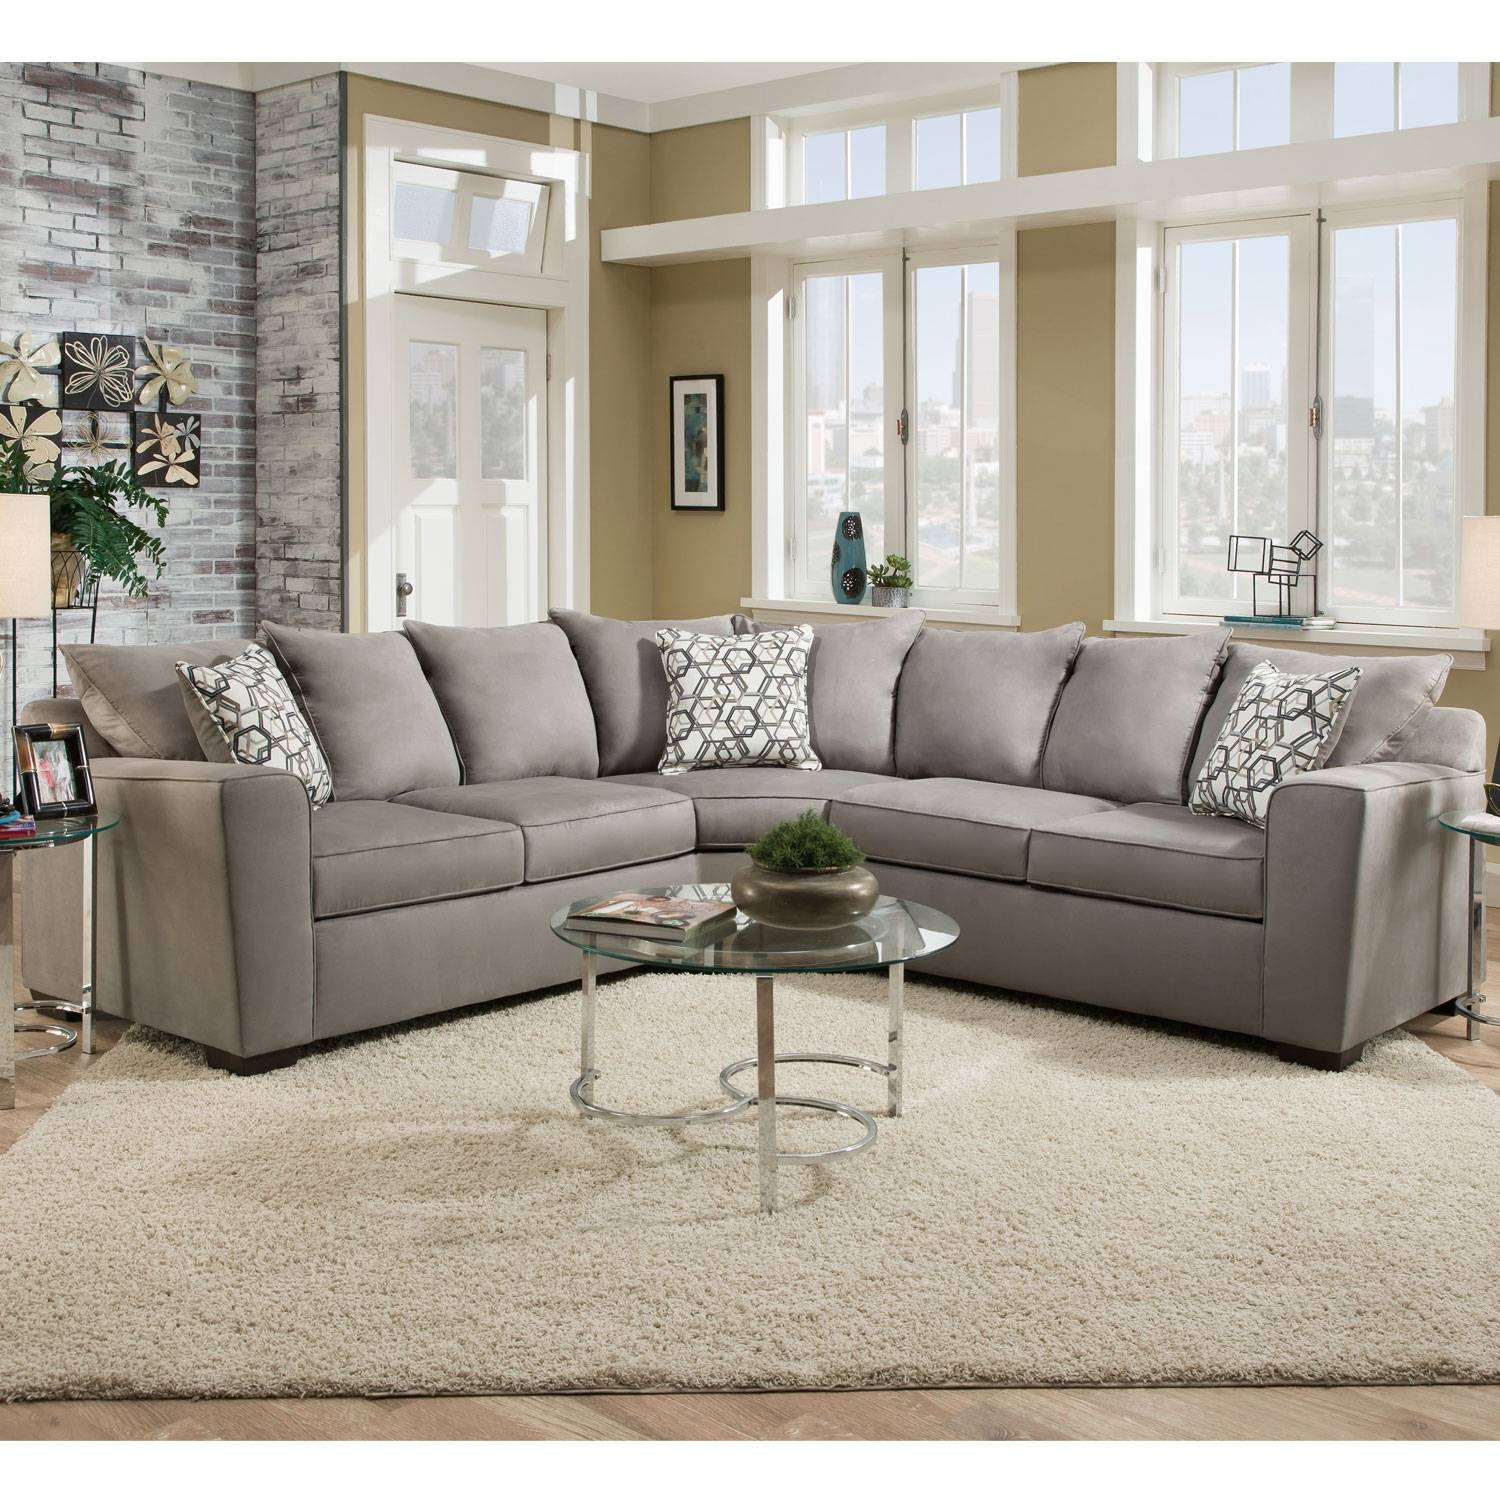 Simmons 8530Br Sectional Sofa Bellamy Slate | Hope Home for Simmons Sectional Sofas (Image 10 of 30)